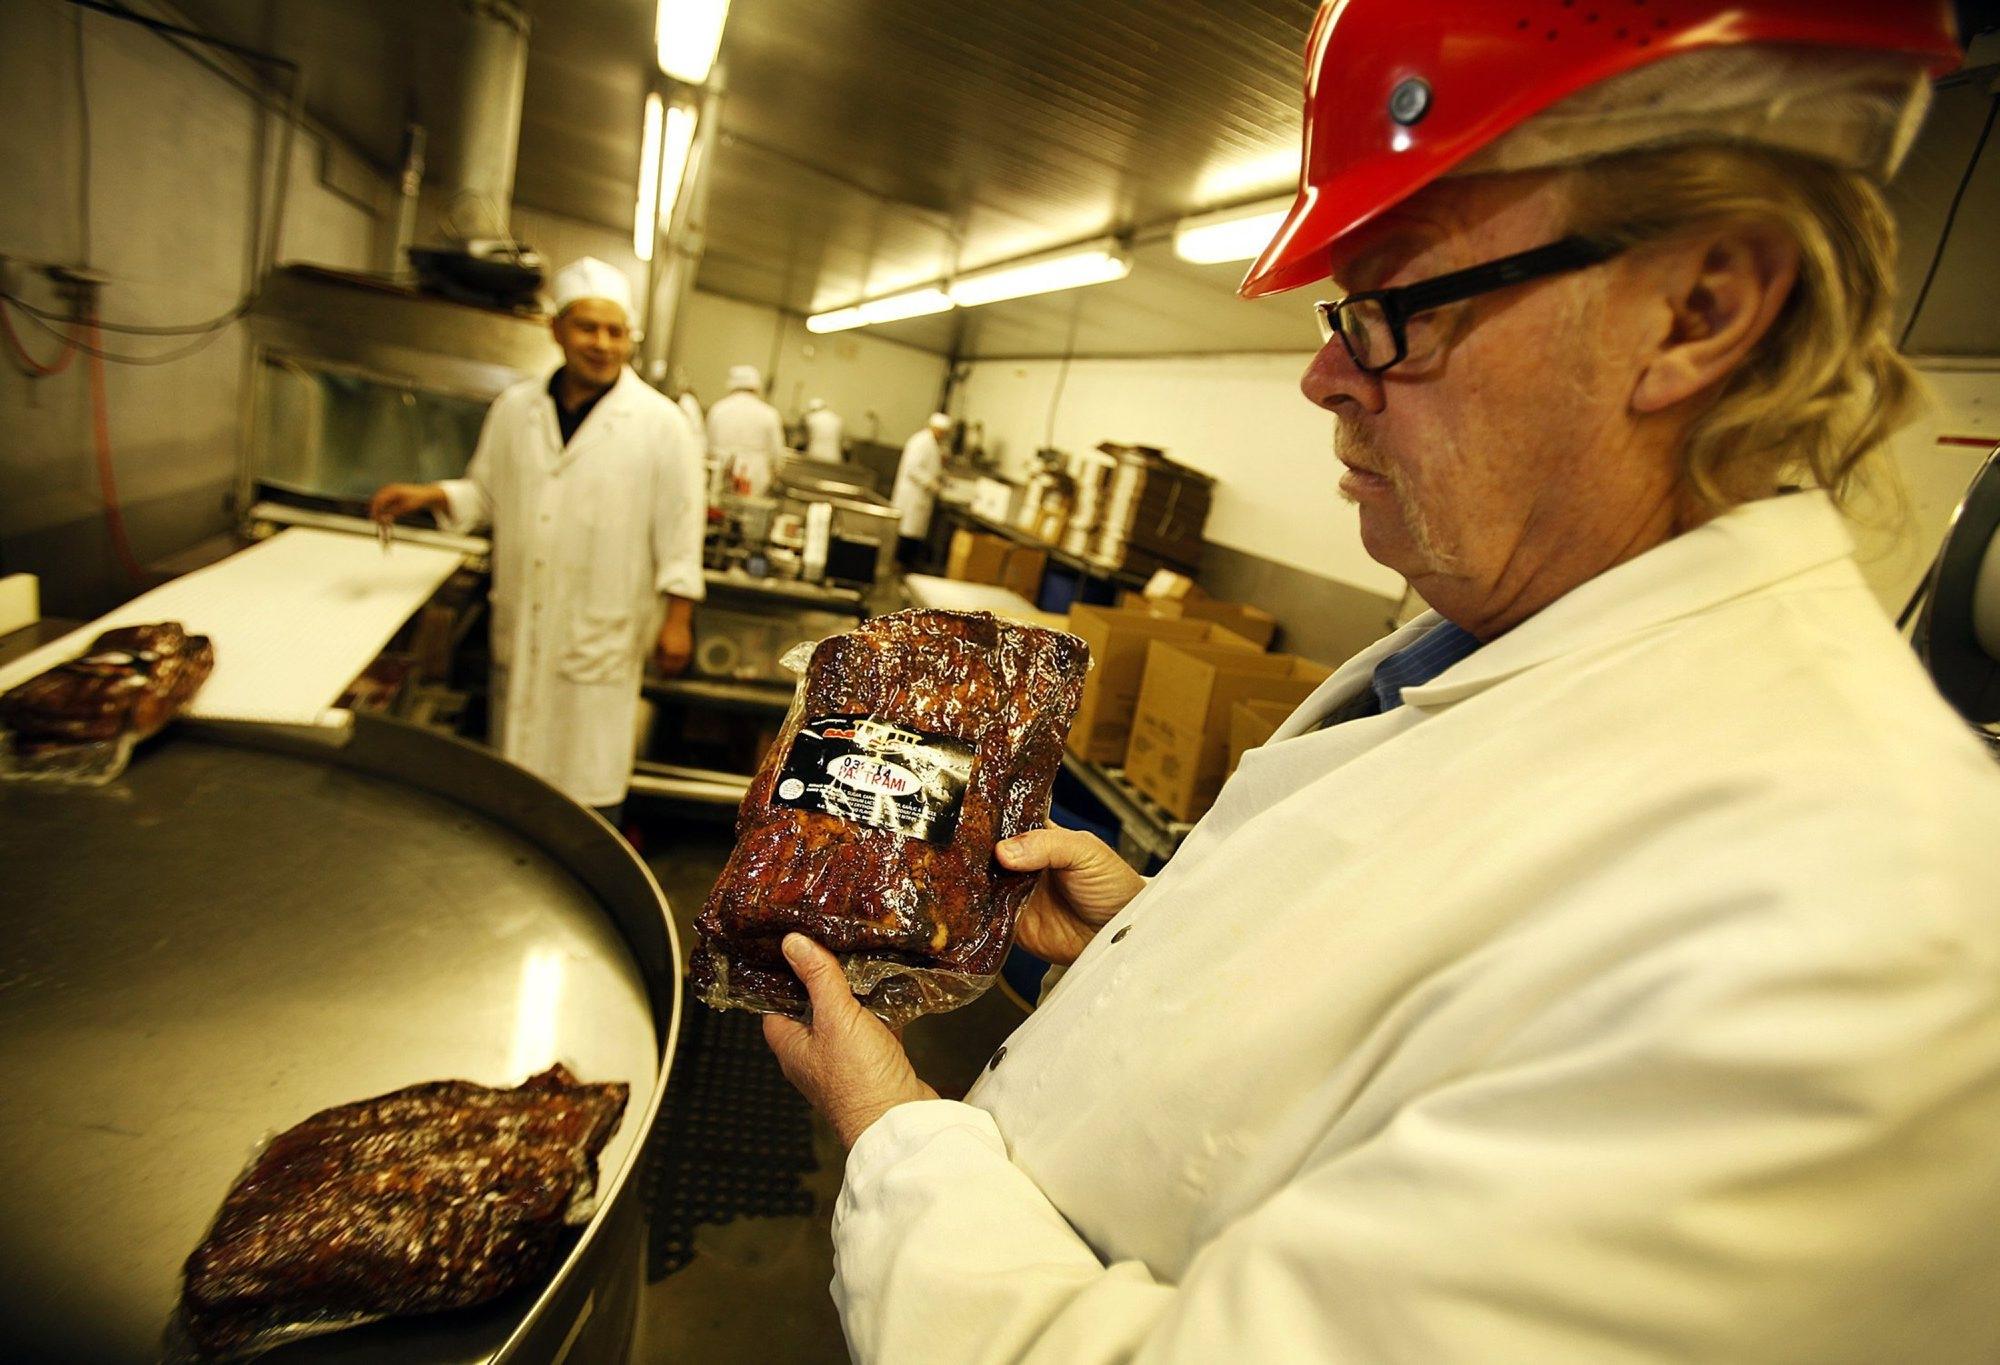 Jerry Haines, right, general manager at R.C. Provisions in Burbank, Calif., checks packaged pastrami ready for shipping. Beef prices are at record highs because of thinning cattle herds devastated by drought, and the soaring cost of raw materials has driven profit margins down.